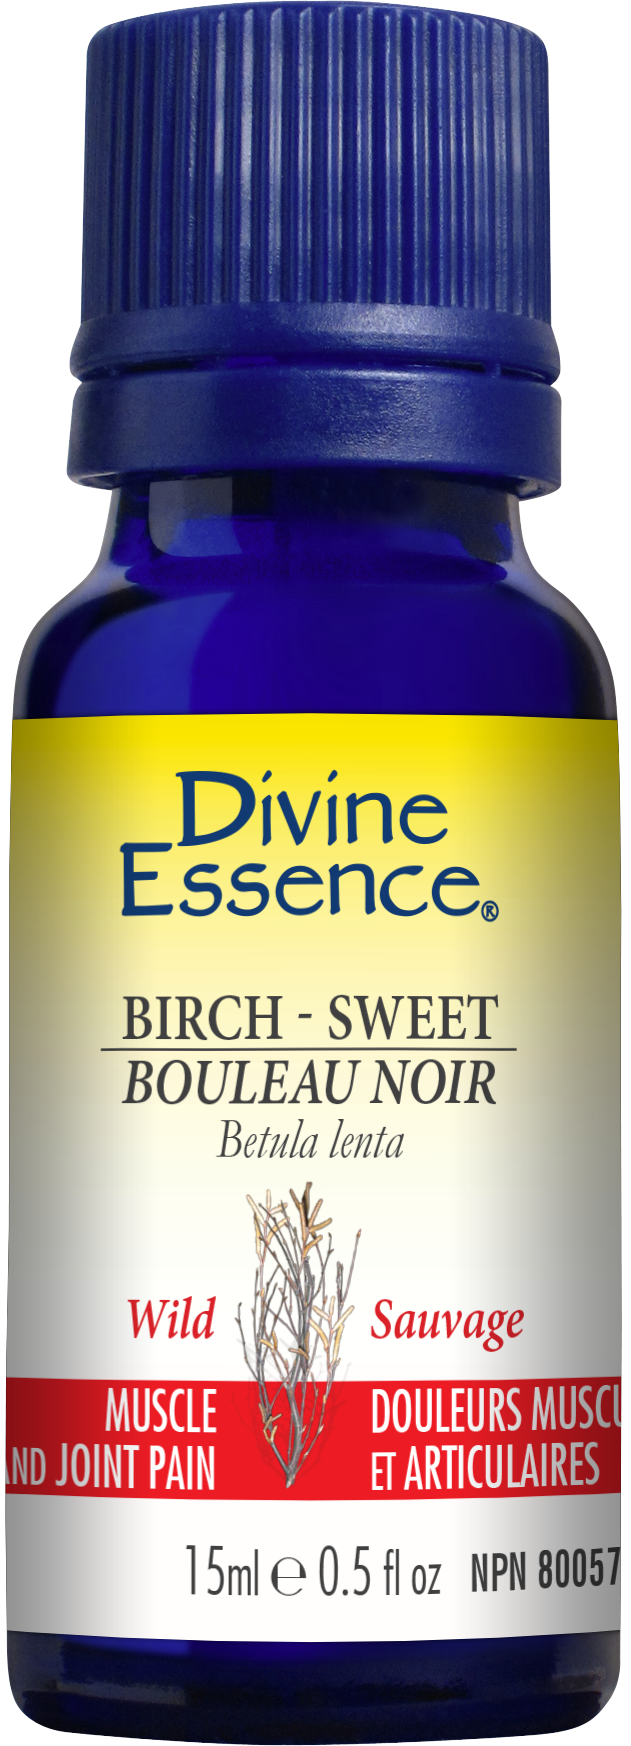 Birch - Sweet 15ml